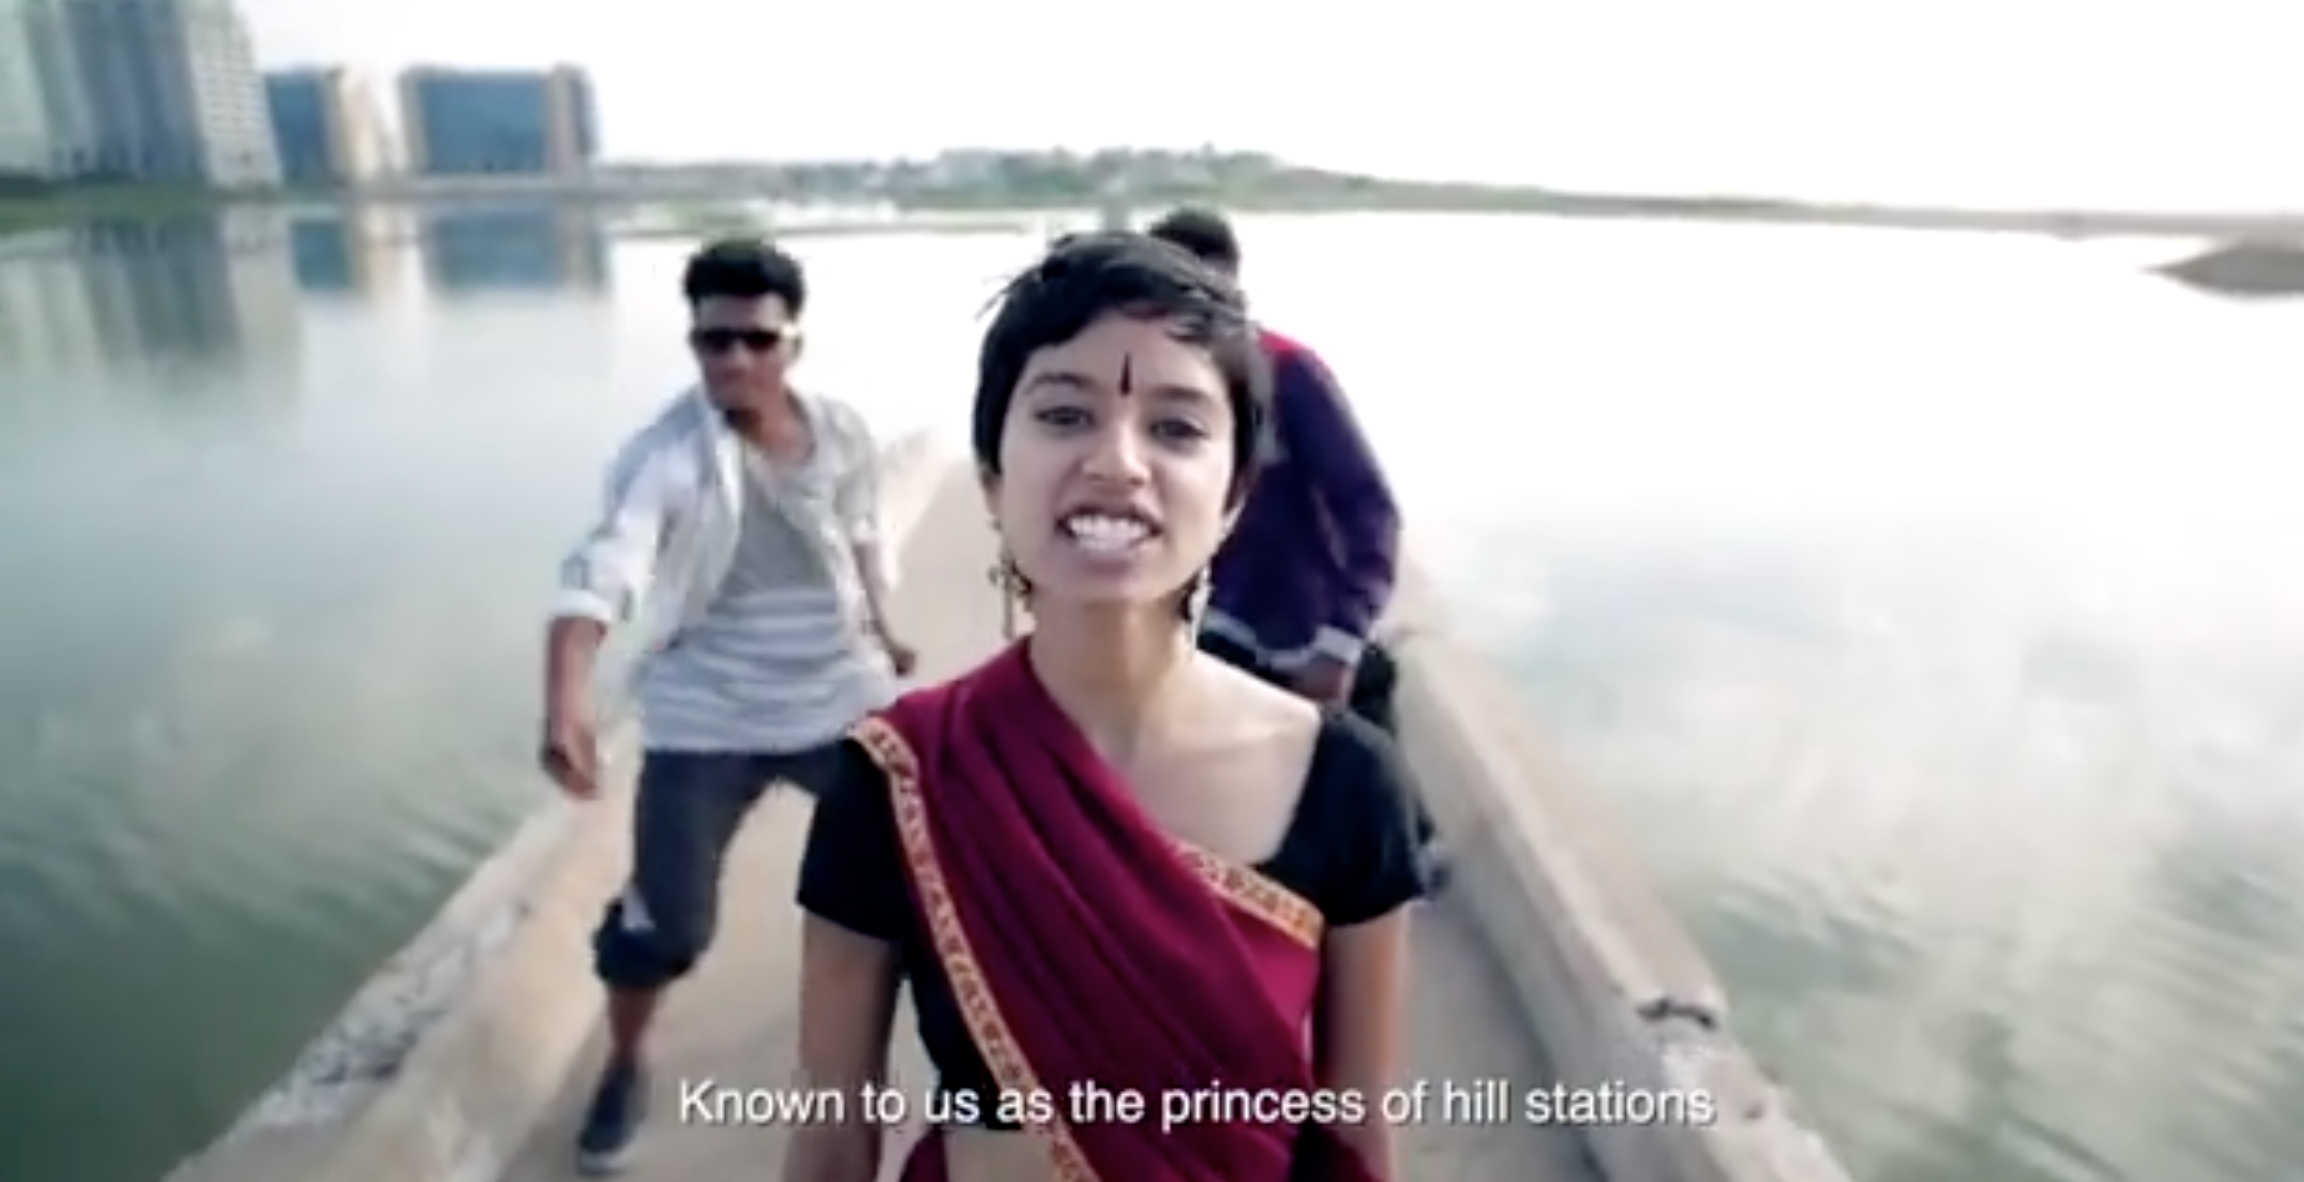 Music Video Exhorting Unilever to Act on Kodaikanal's Mercury Problem Goes Viral